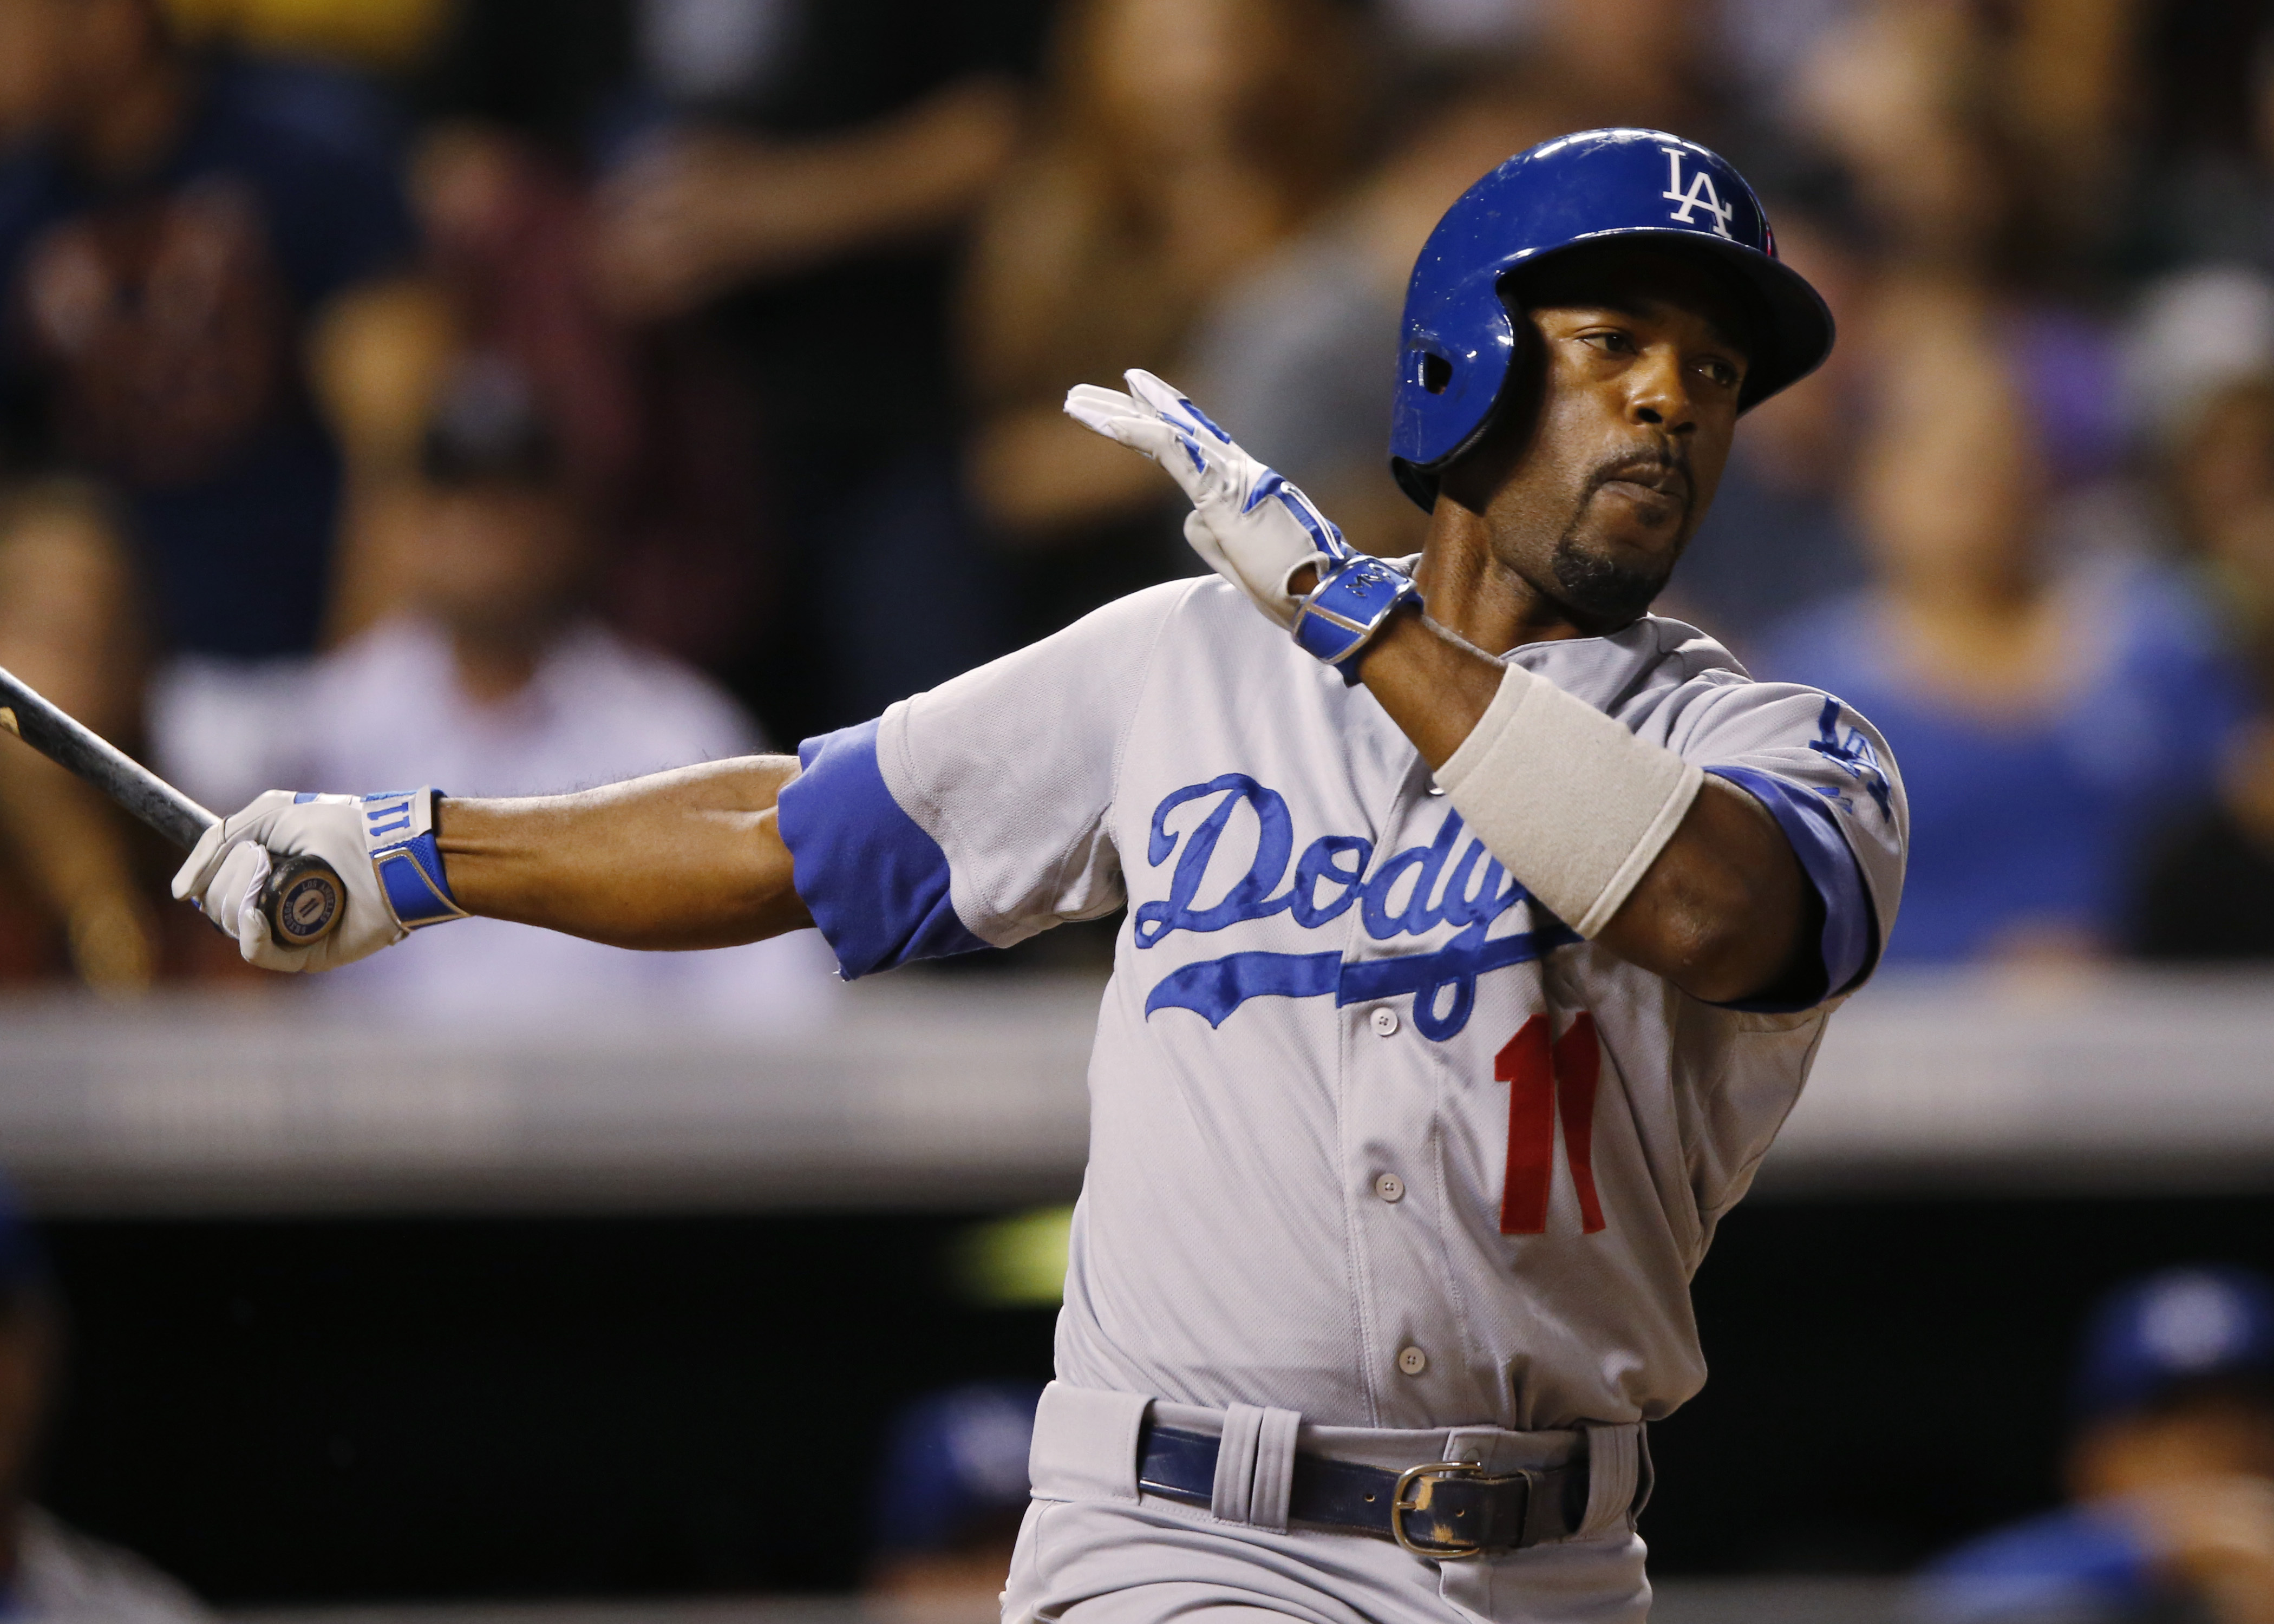 FILE - In this Sept. 25, 2015, file photo, Los Angeles Dodgers shortstop Jimmy Rollins (11) bats against the Colorado Rockies in the fifth inning of a baseball game, in Denver. Former National League MVP Jimmy Rollins agreed Monday, Feb. 22, 2016,  to a m